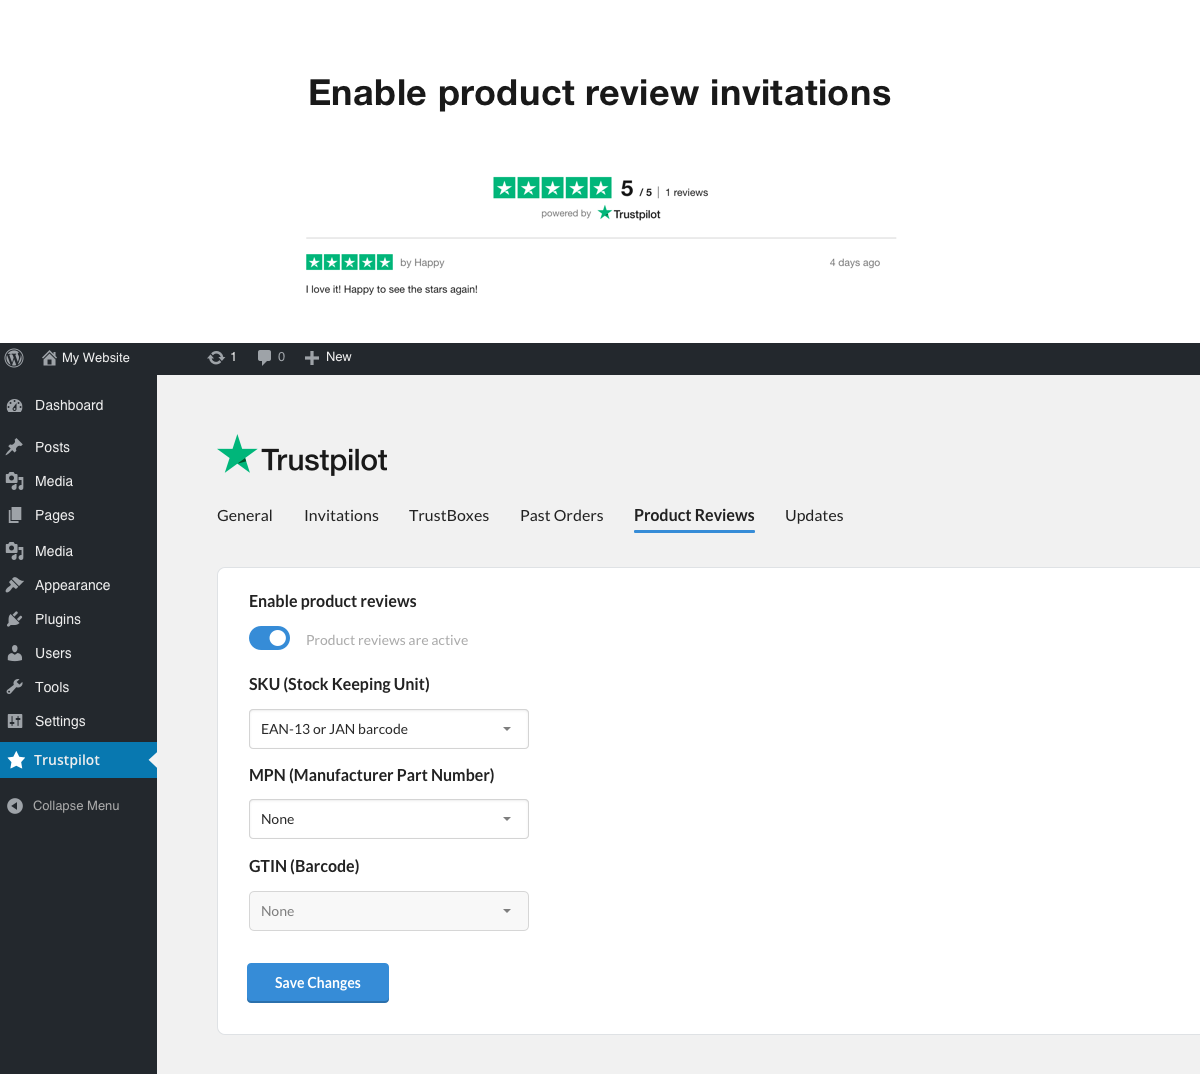 Enable product review invitations